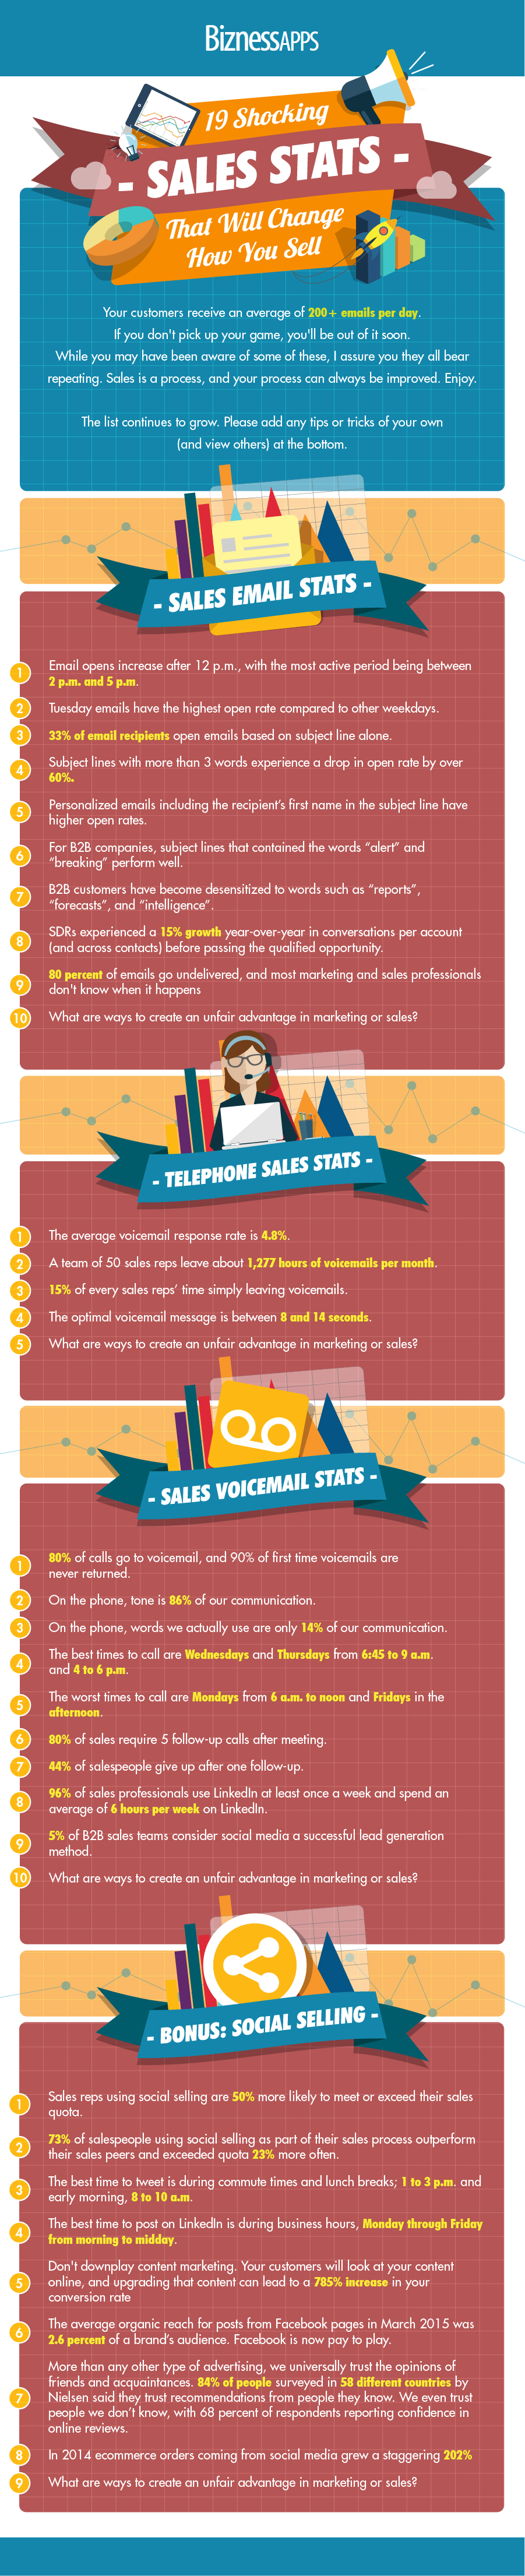 19-shocking-sales-stats